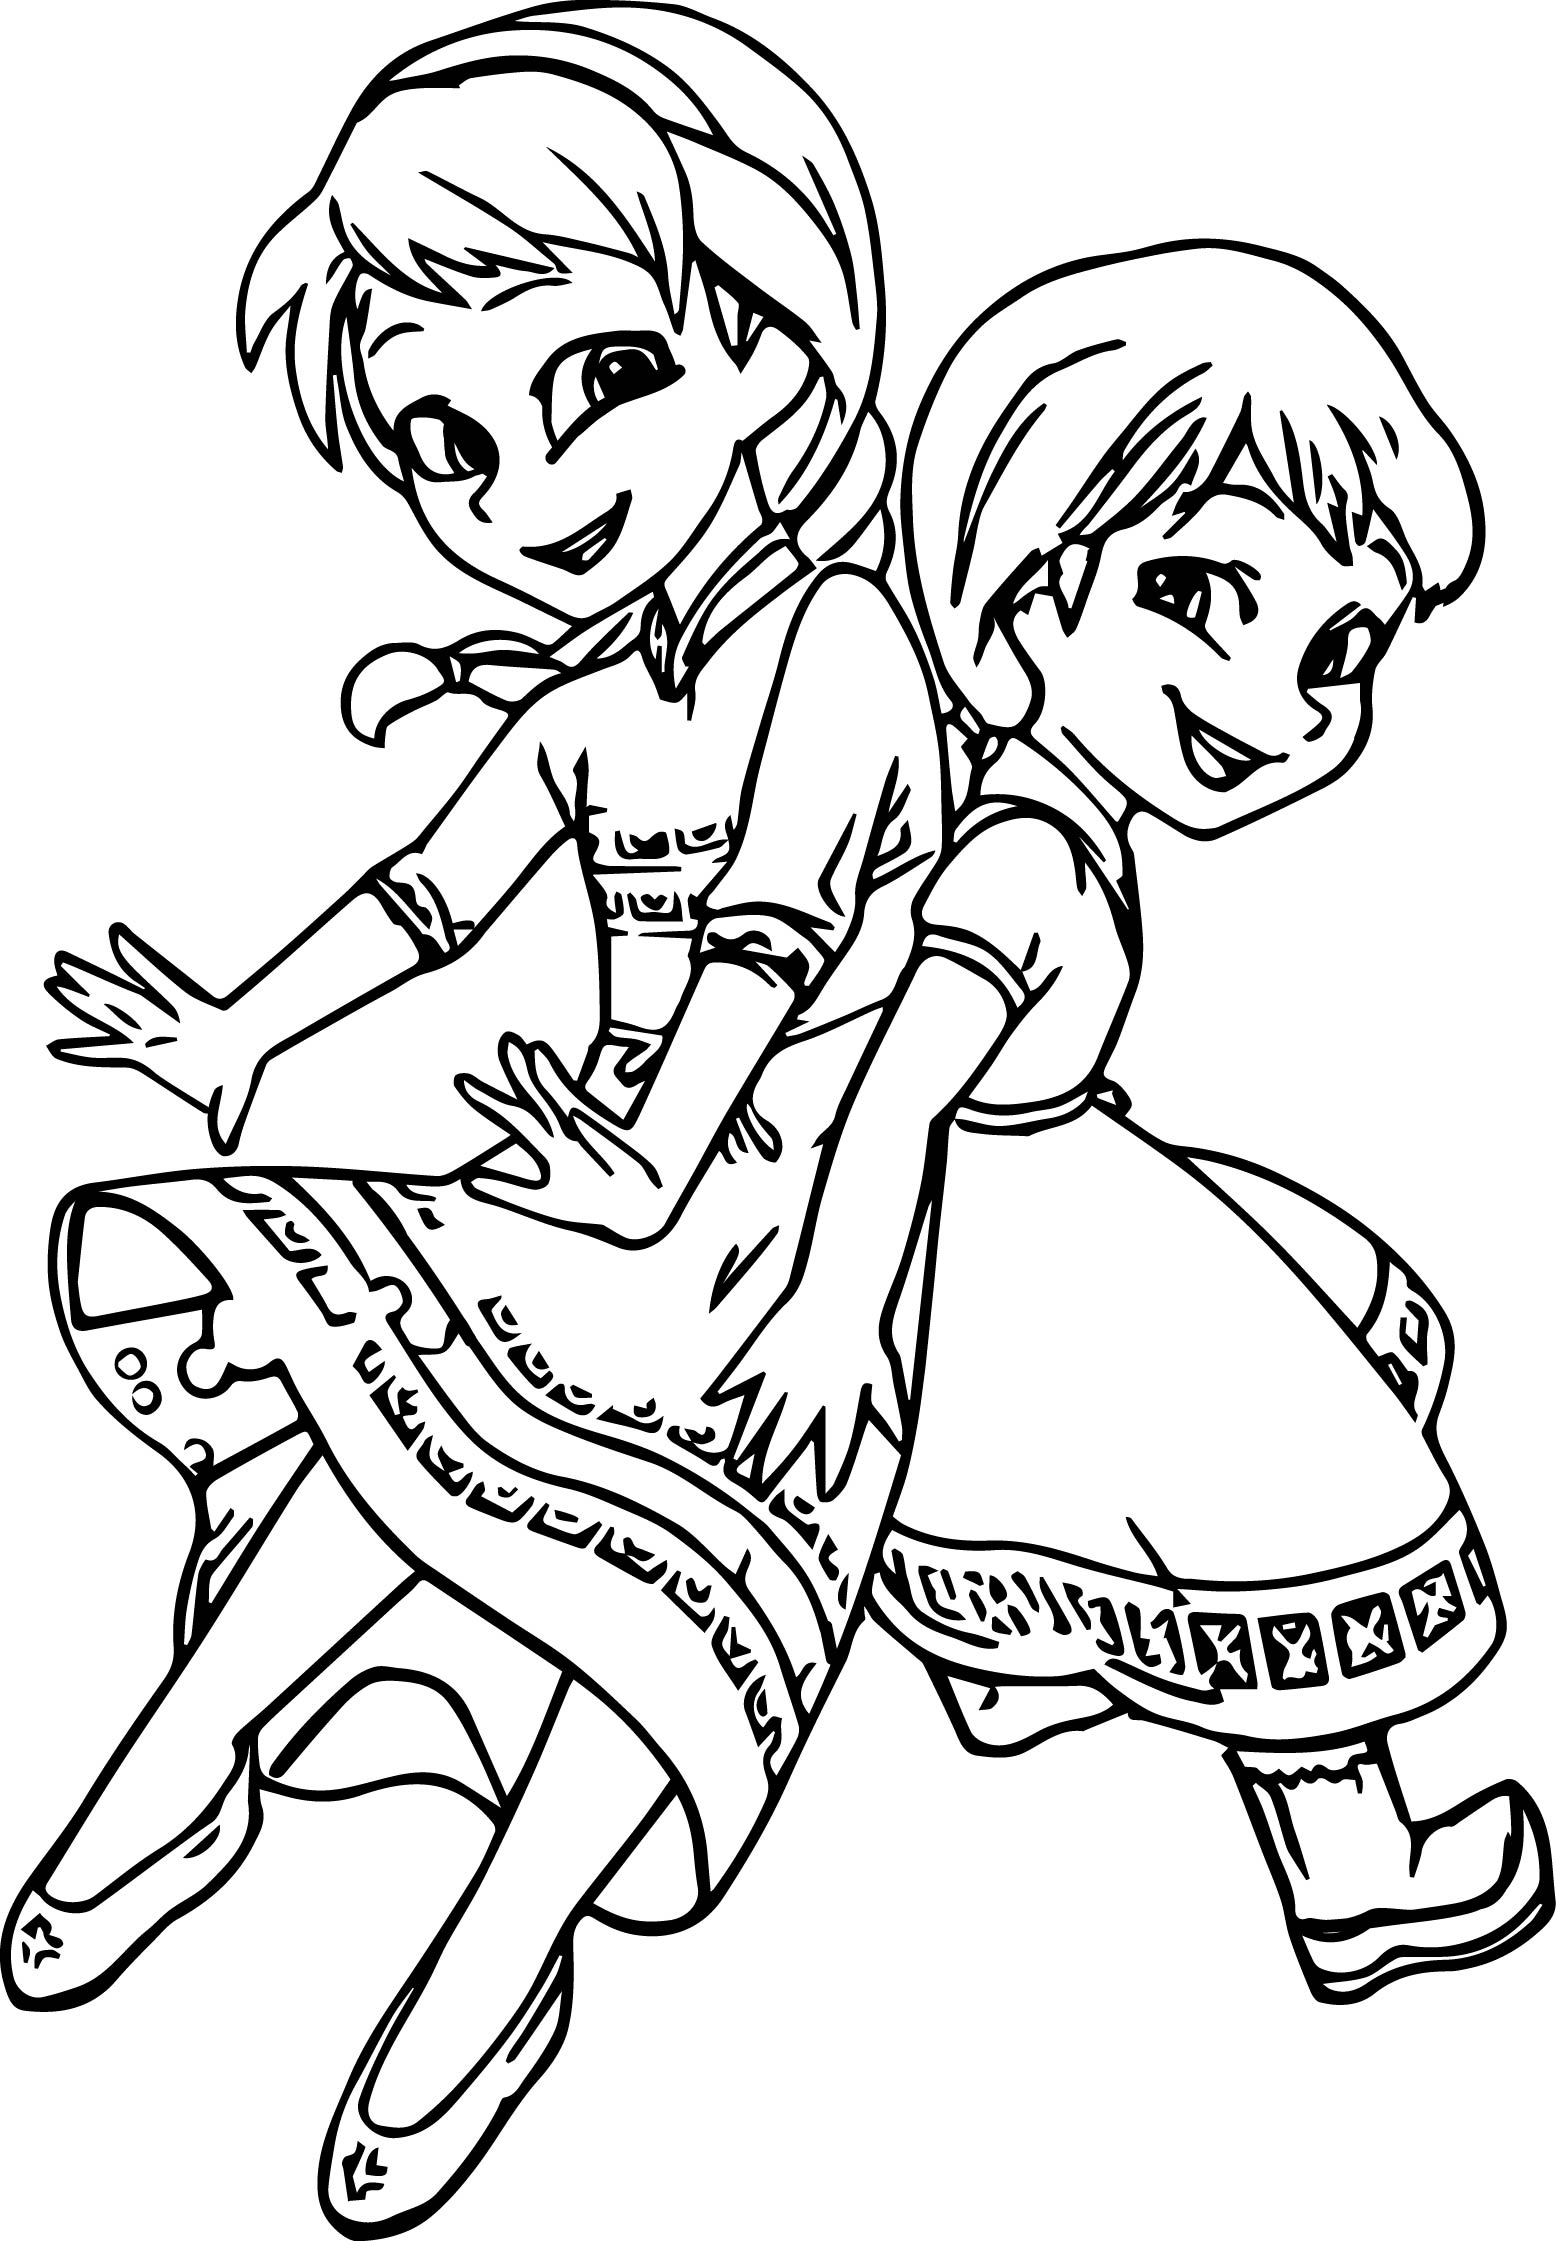 very cute coloring pages - photo#16